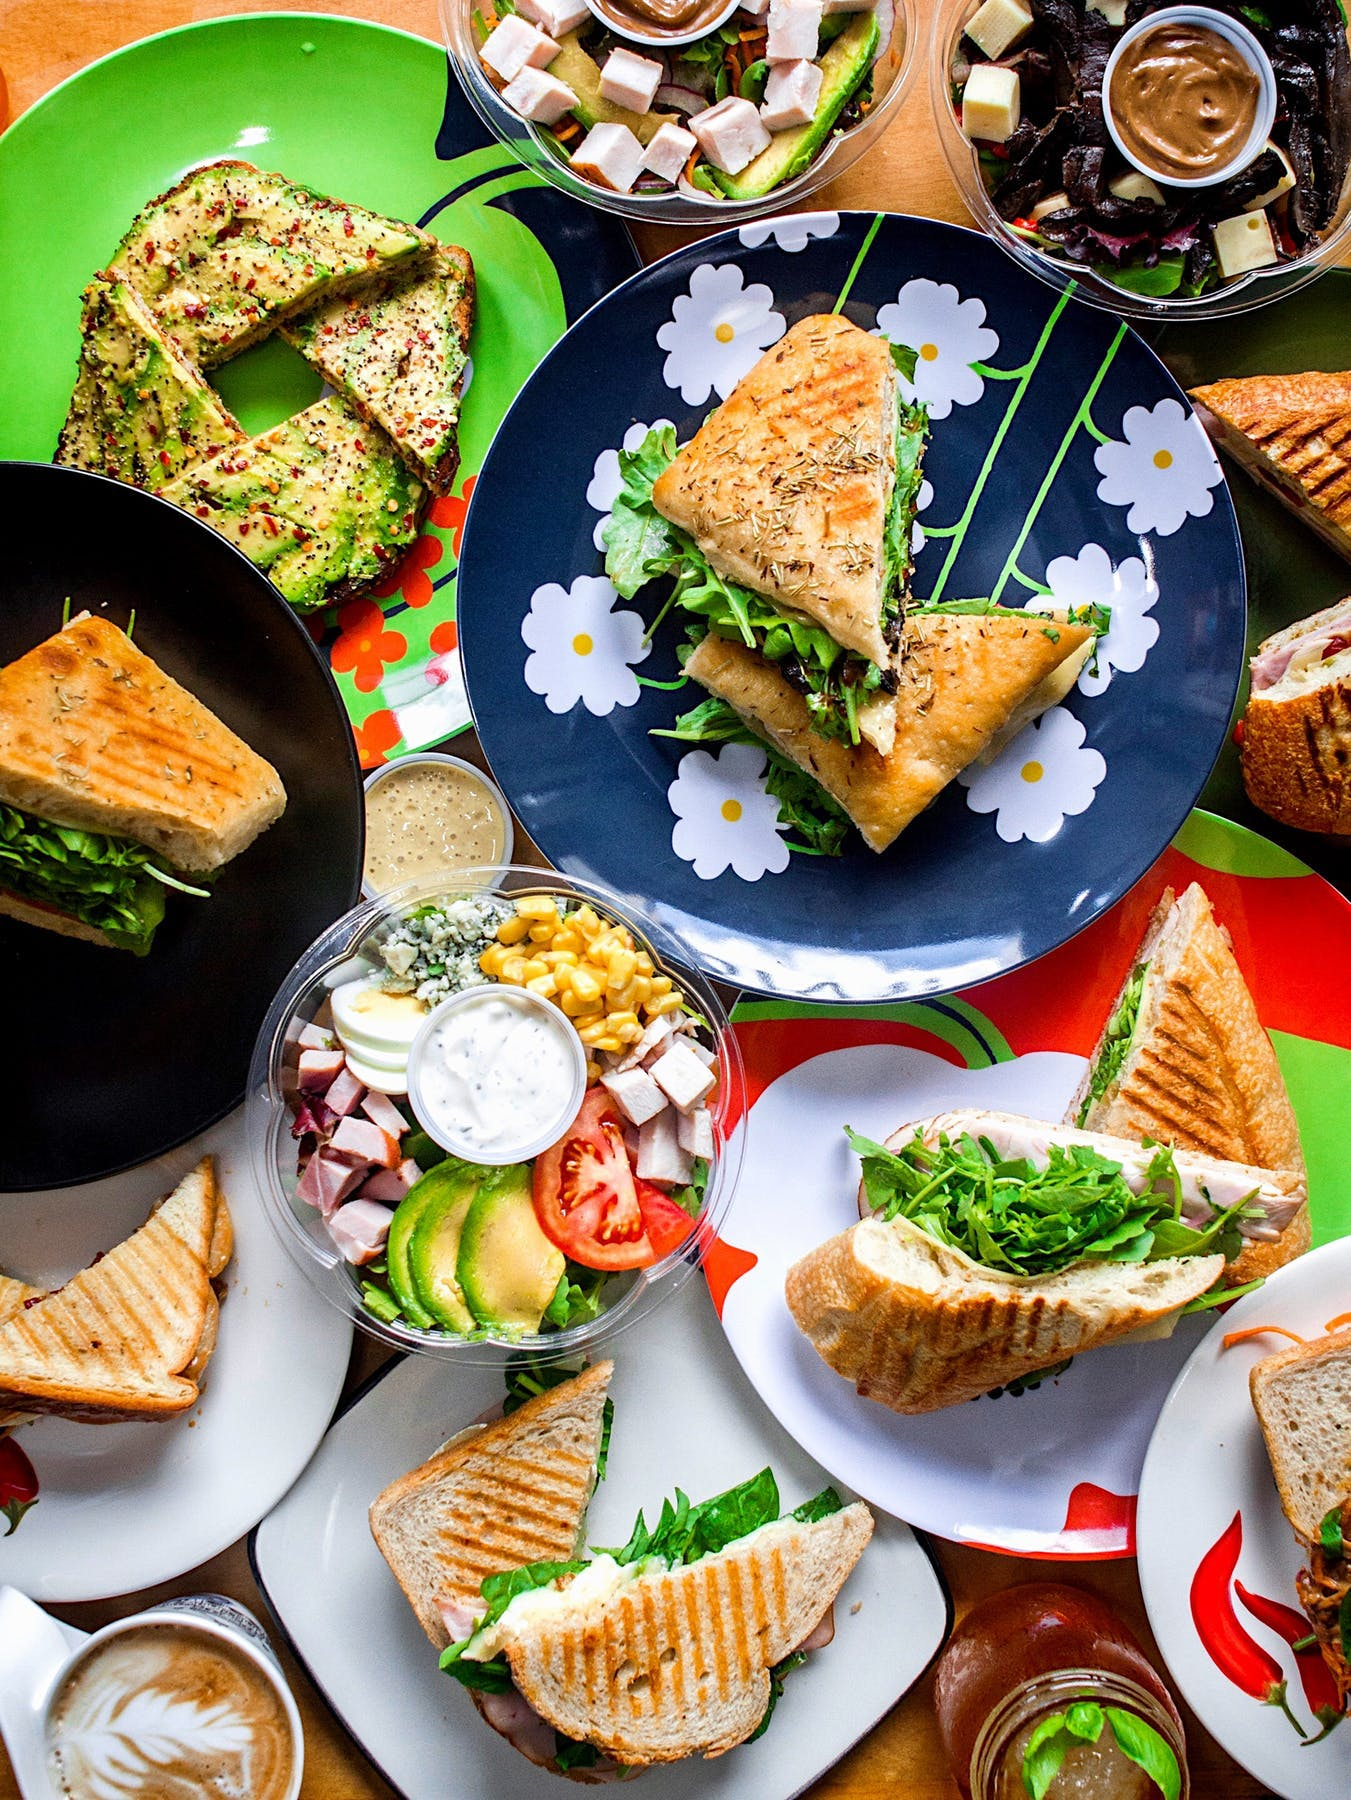 plates of food on a table, most of them sandwiches